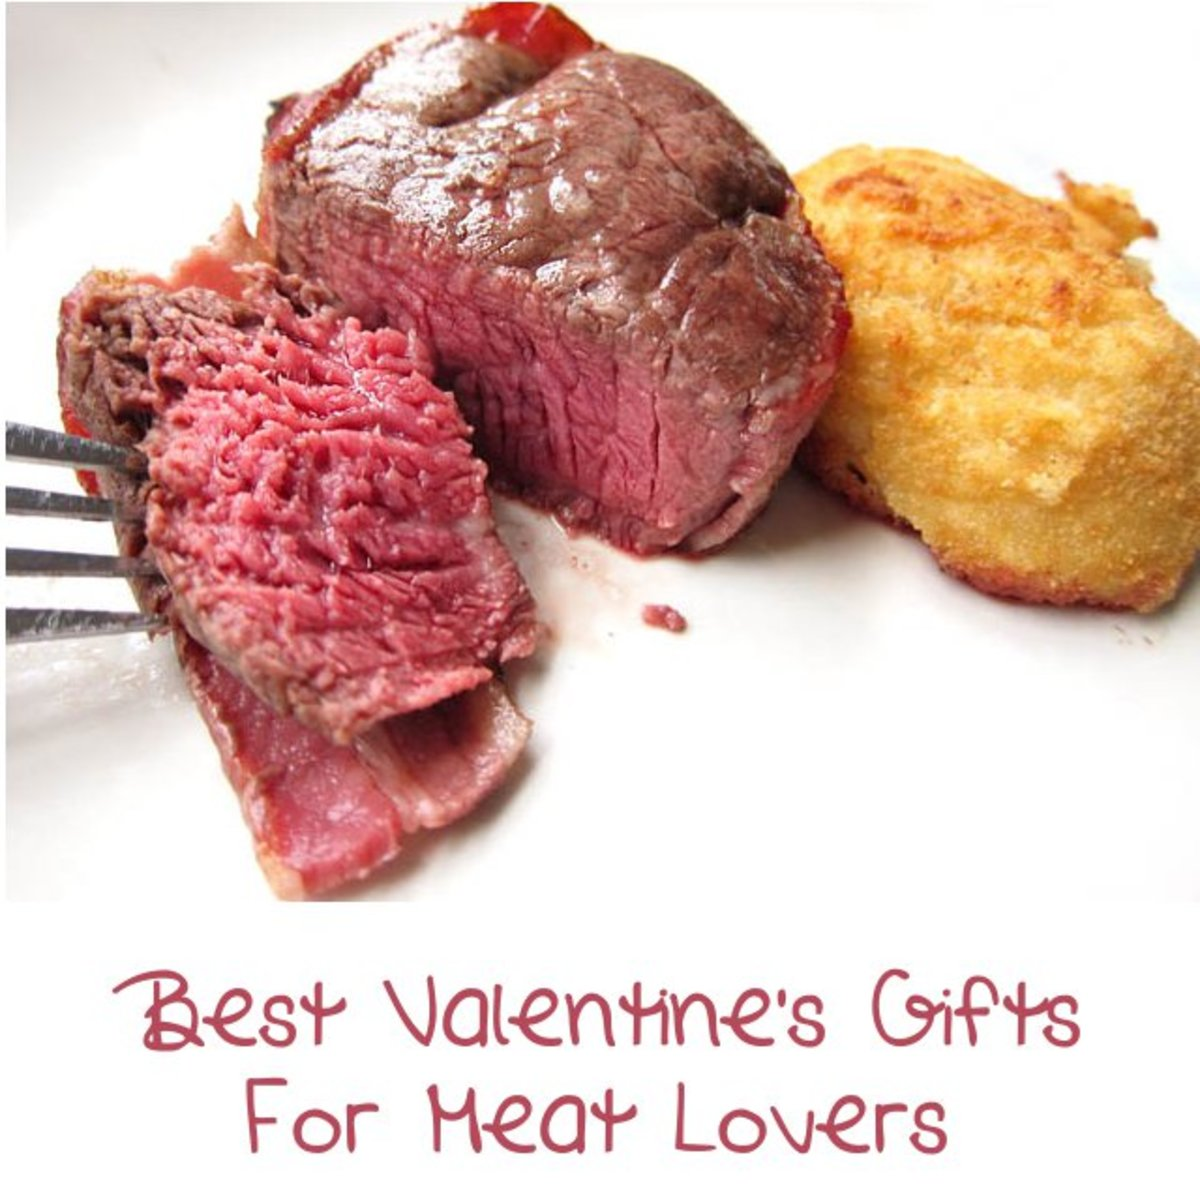 Best Valentine's Gifts for Meat Lovers